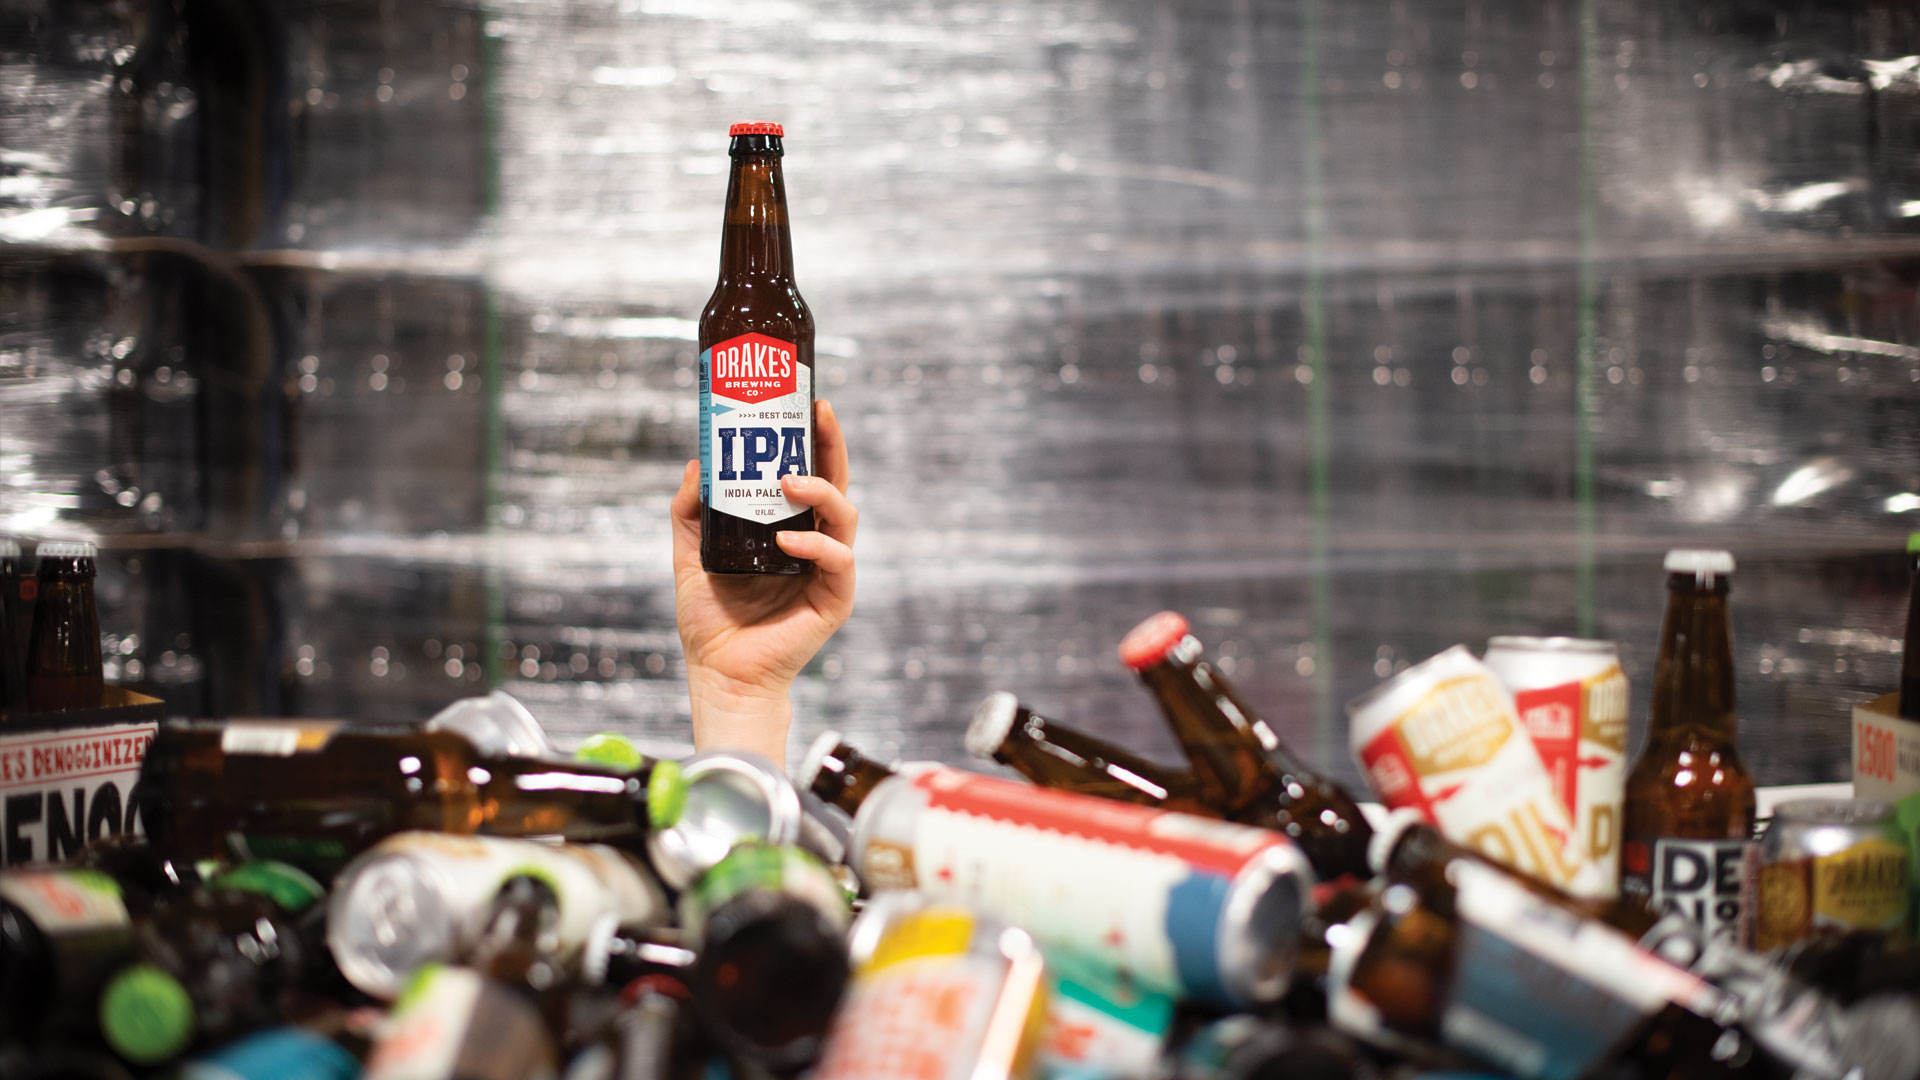 A bottle of Drake's Best Coast IPA being held above a pile of cans and bottles